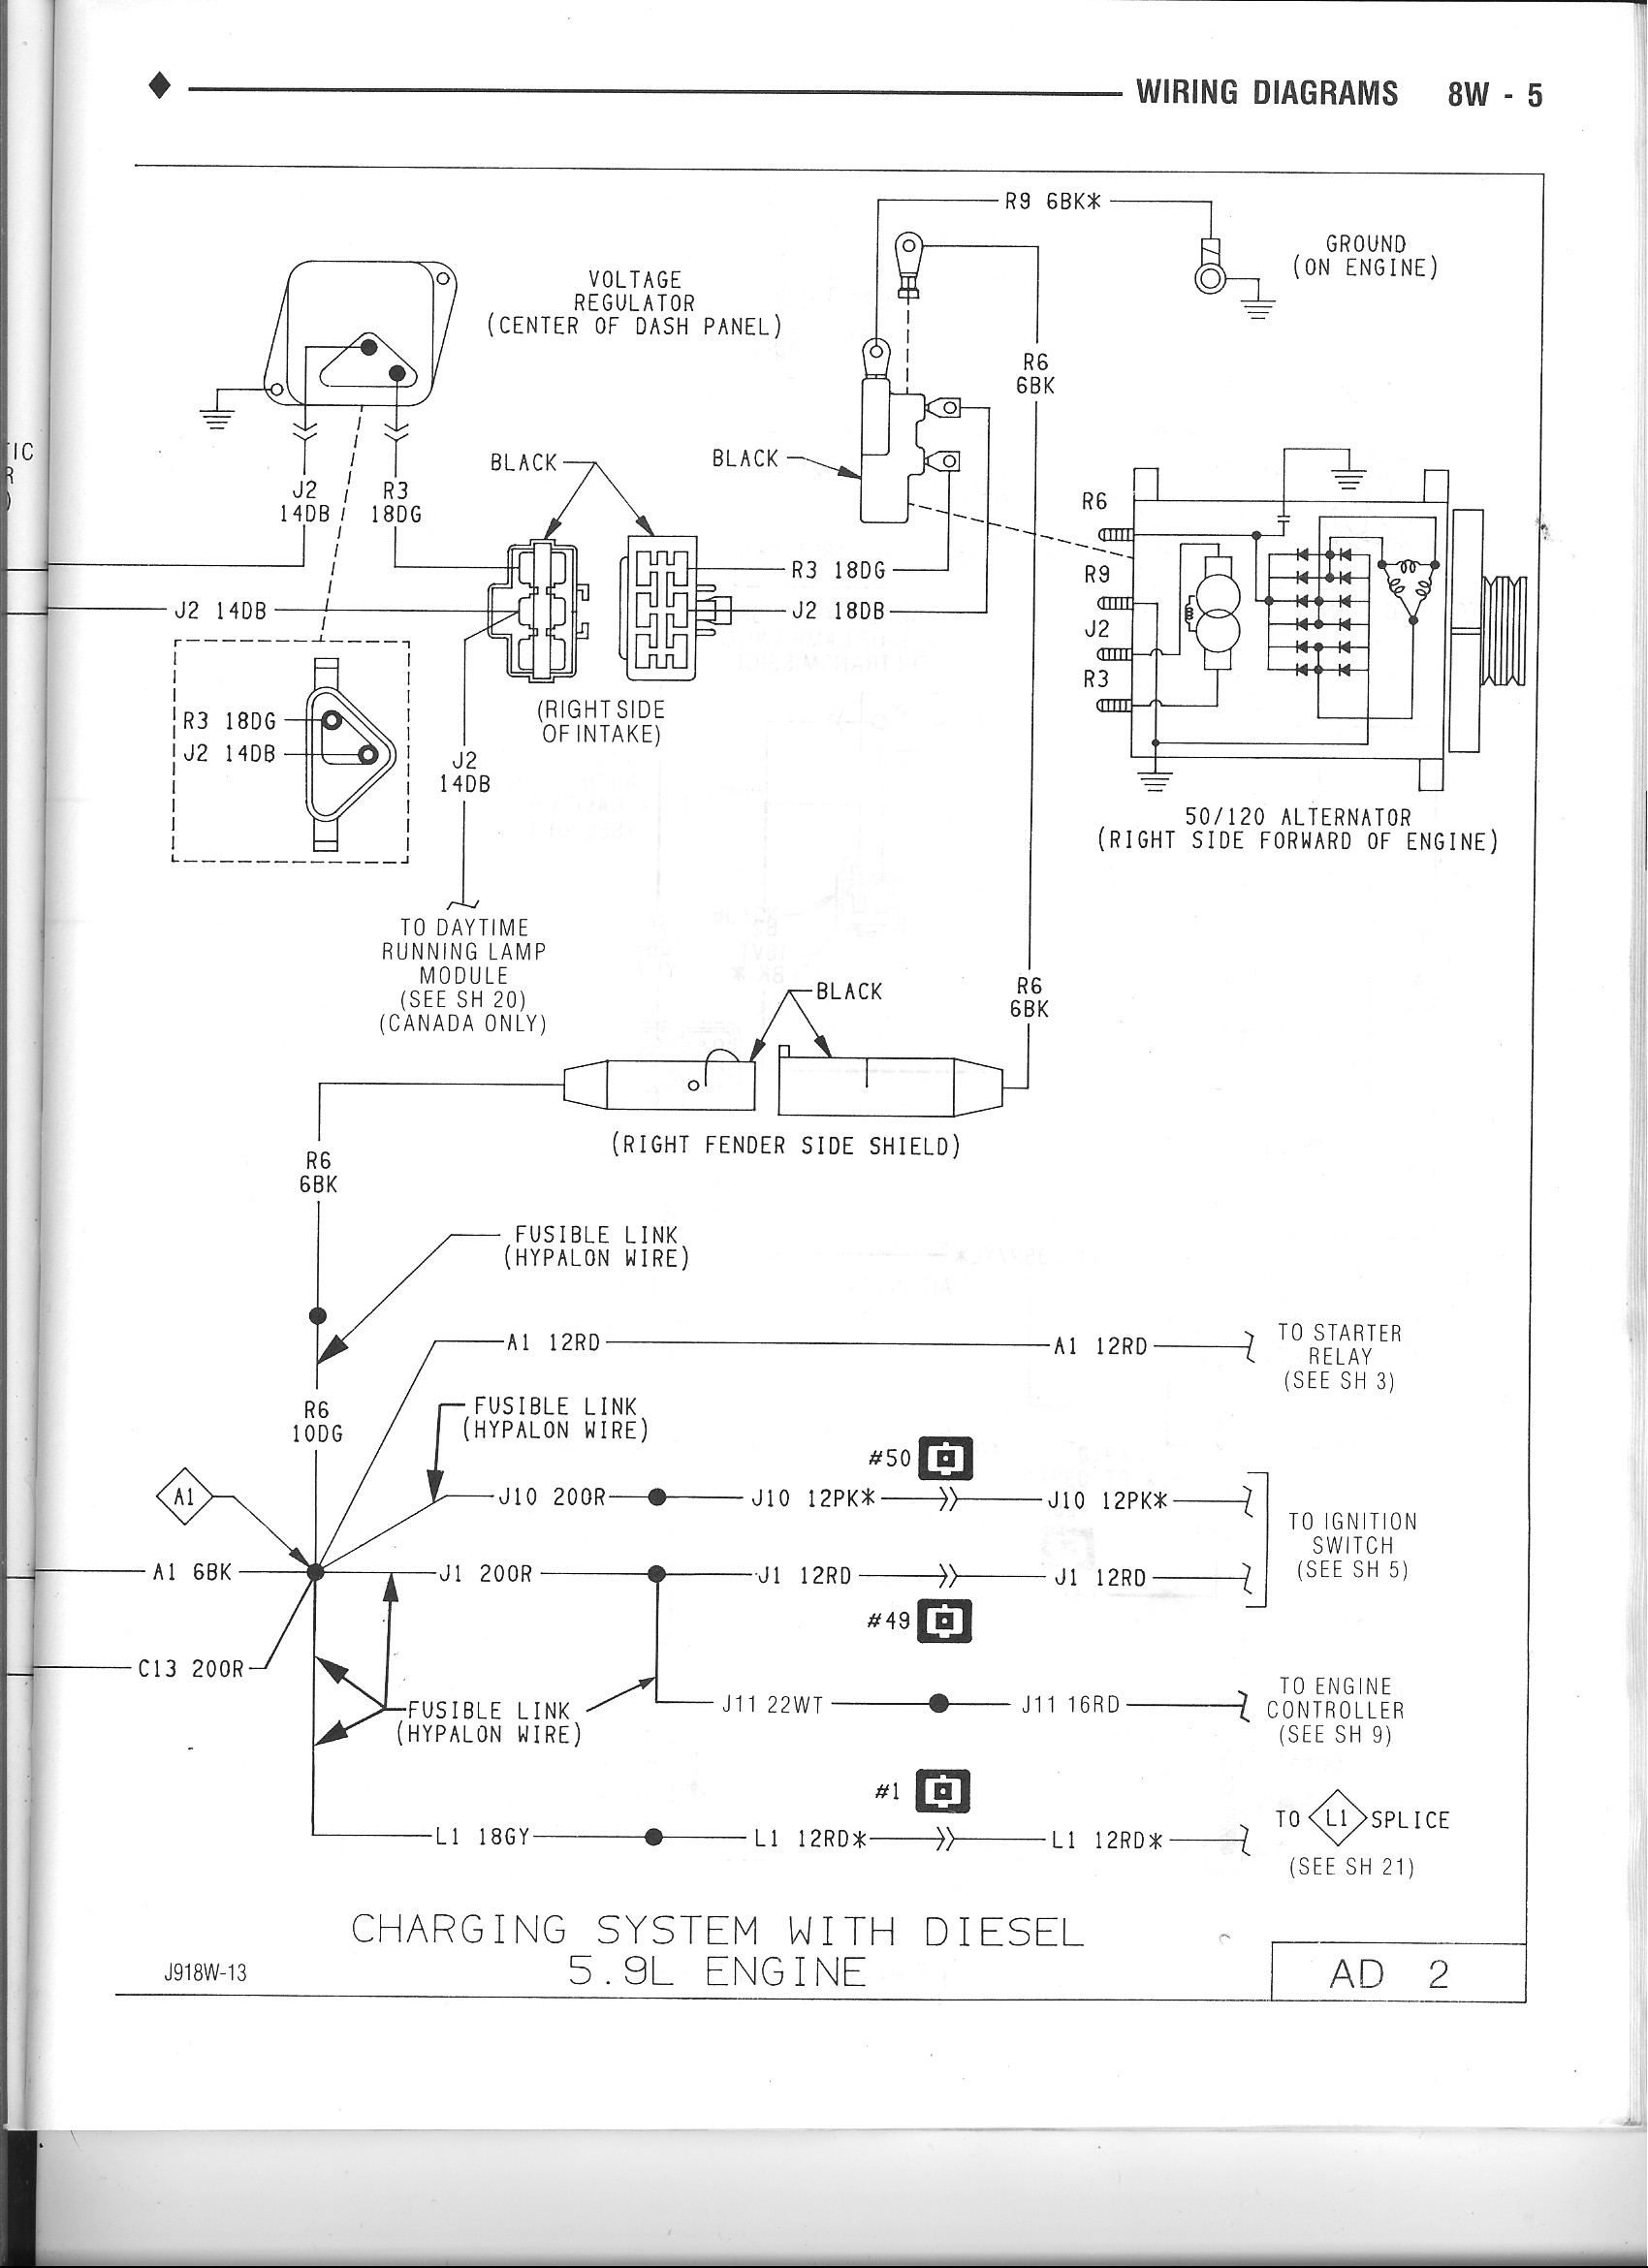 Scan05 1992 dodge d250 wiring diagram 1993 dodge d250 wiring diagram 91 dodge ram 250 diesel wiring diagram at gsmportal.co